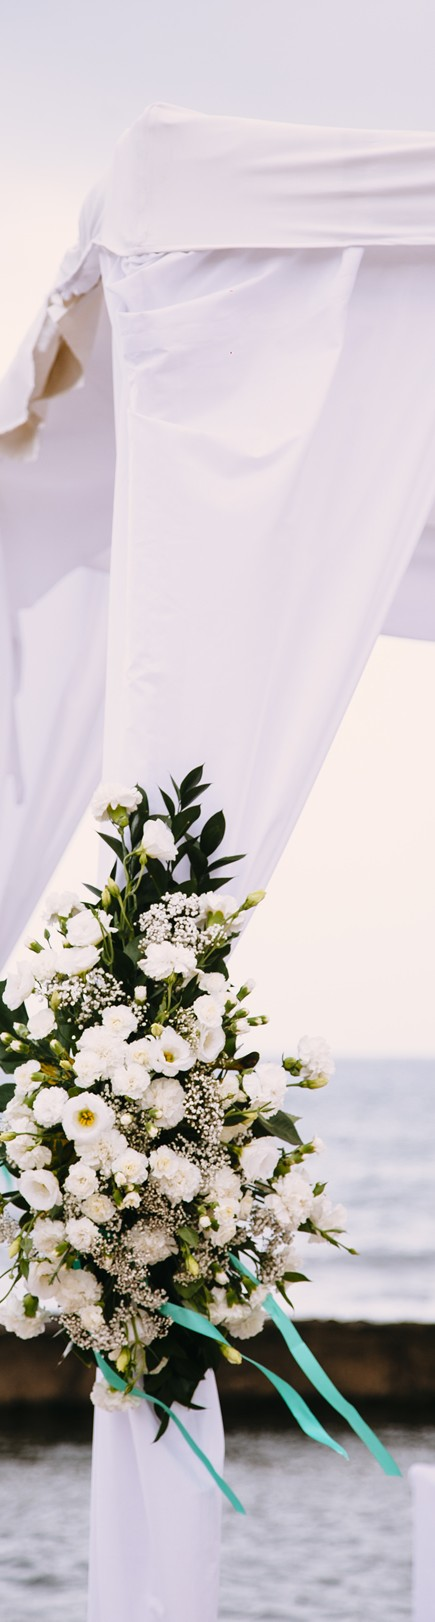 Wedding-Caroline-and-James-in-tenerife-myperfectwedding0007